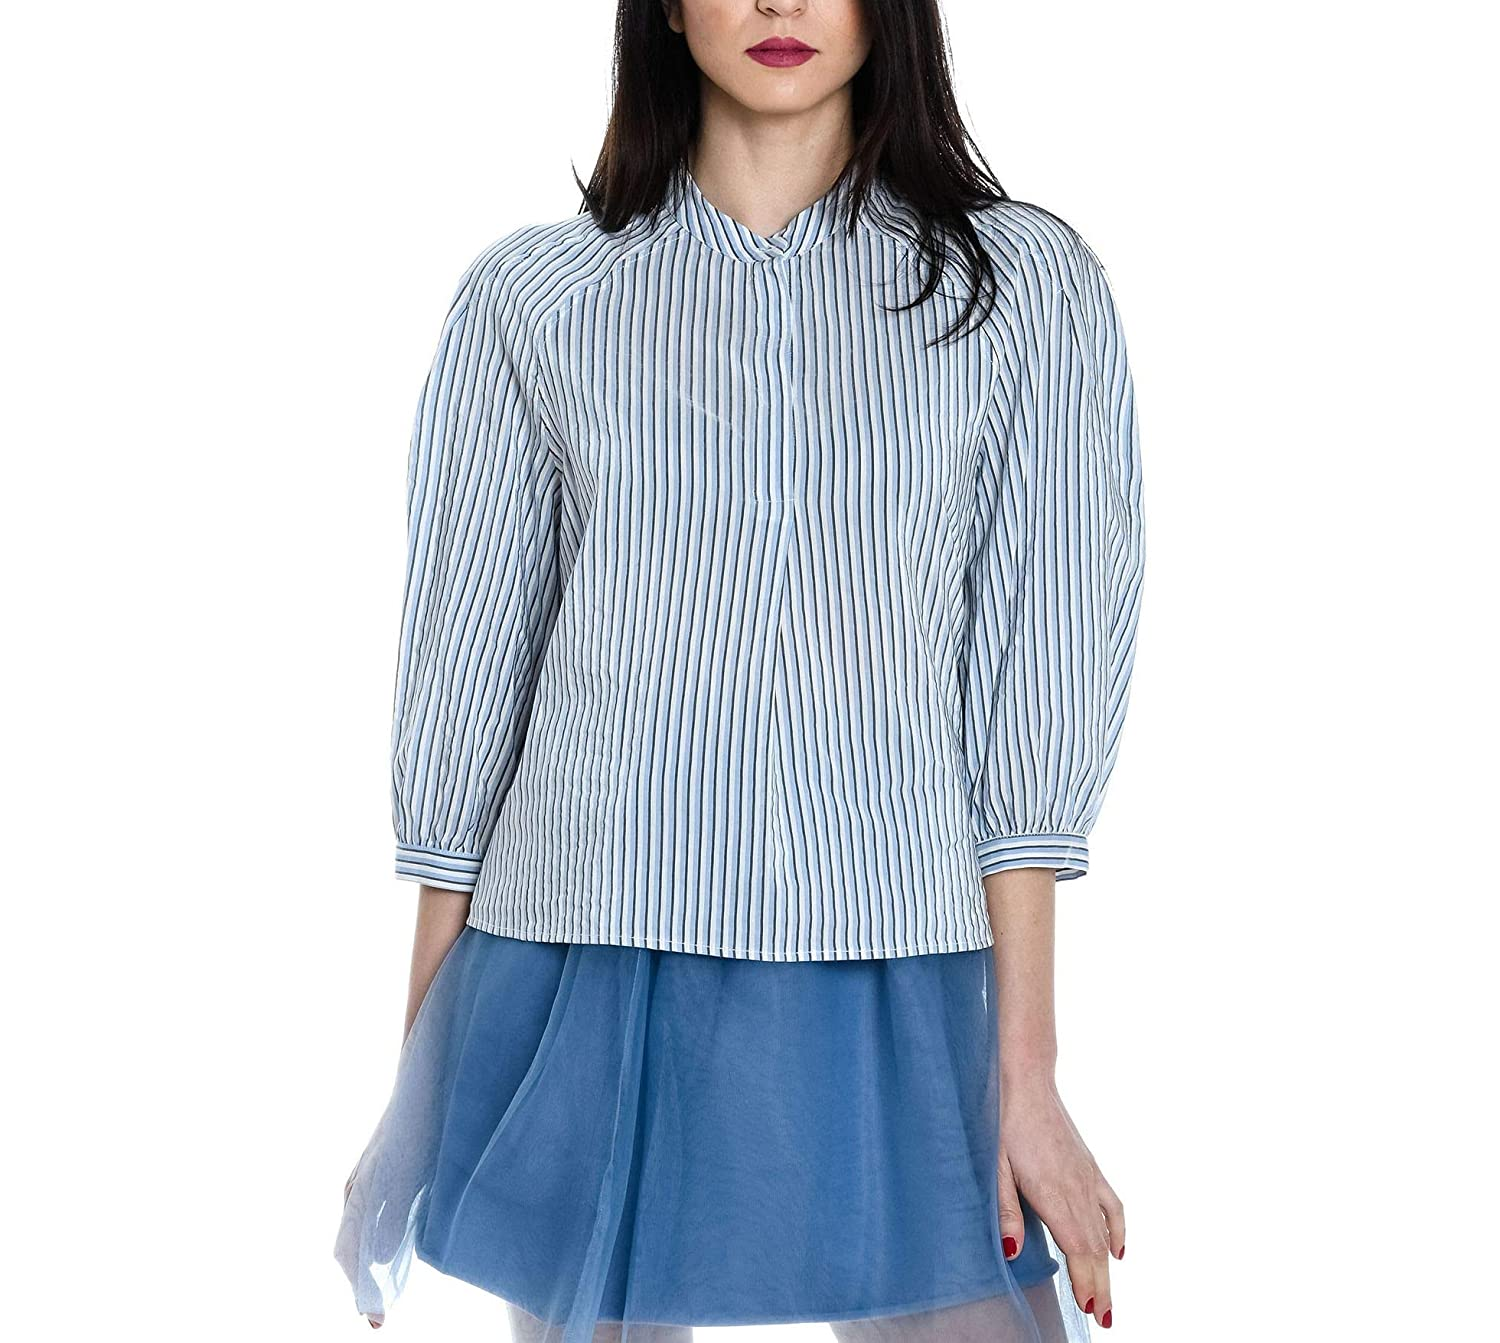 Attic And Barn Women's ATBL009AT090824 Light bluee Cotton Blouse